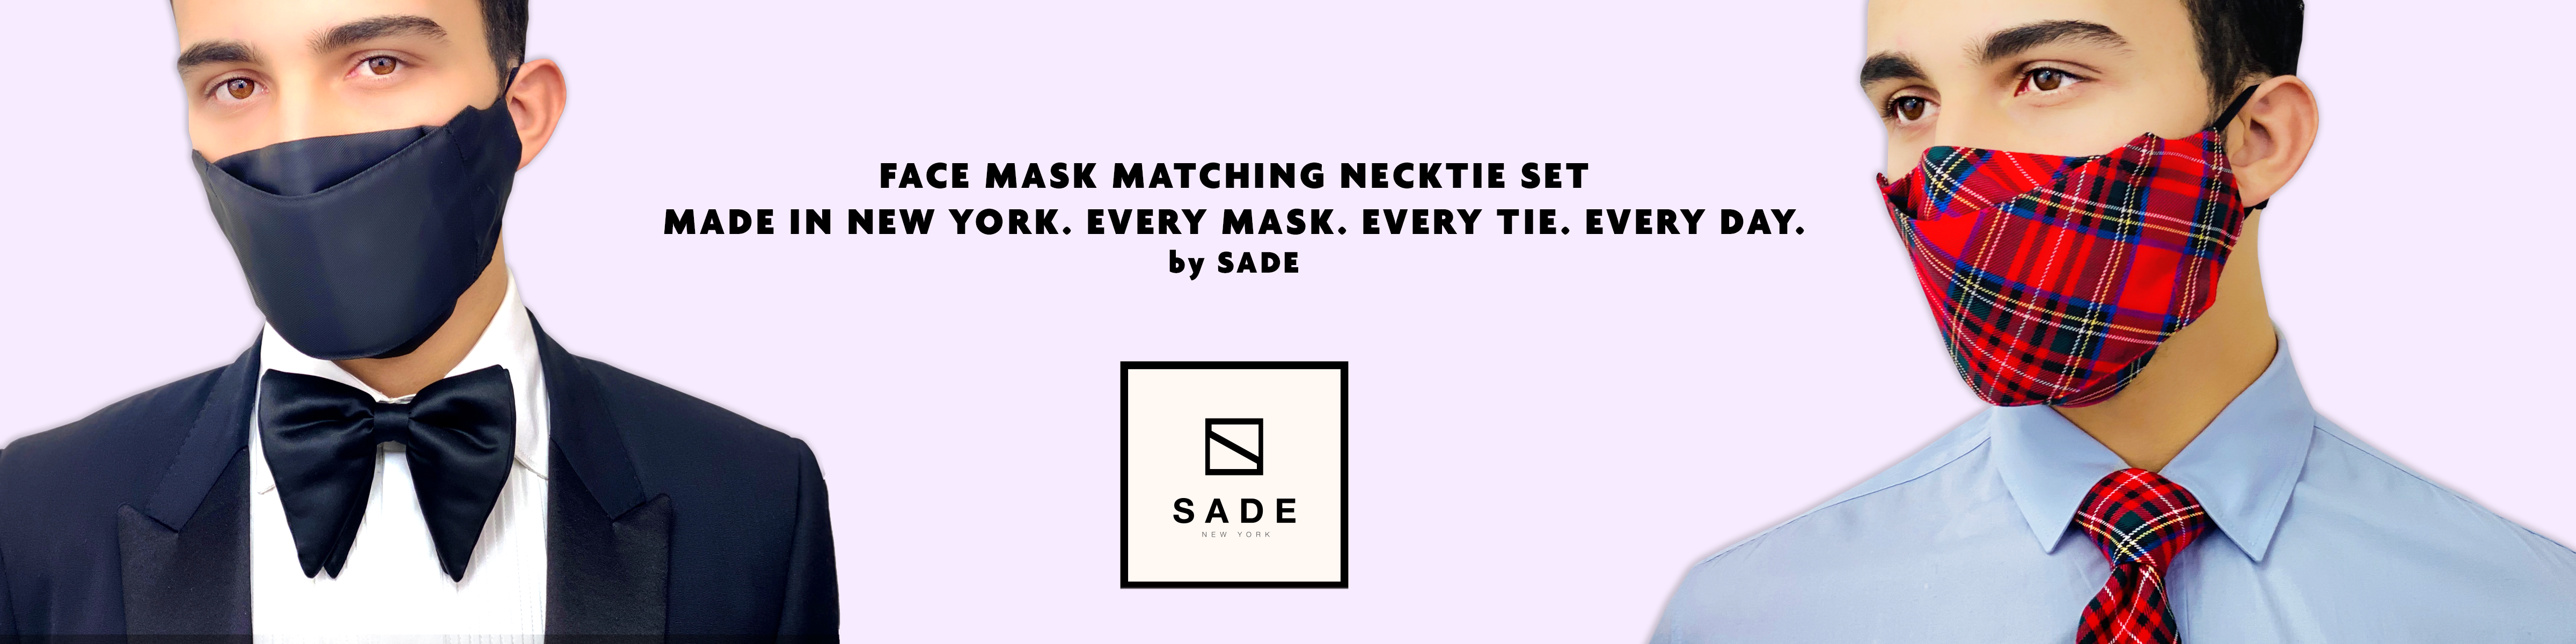 Elevate your quarantine wardrobe by matching your face mask to your tie, bow tie,  handkerchief, Fast shipping Made in USA by Sade New York